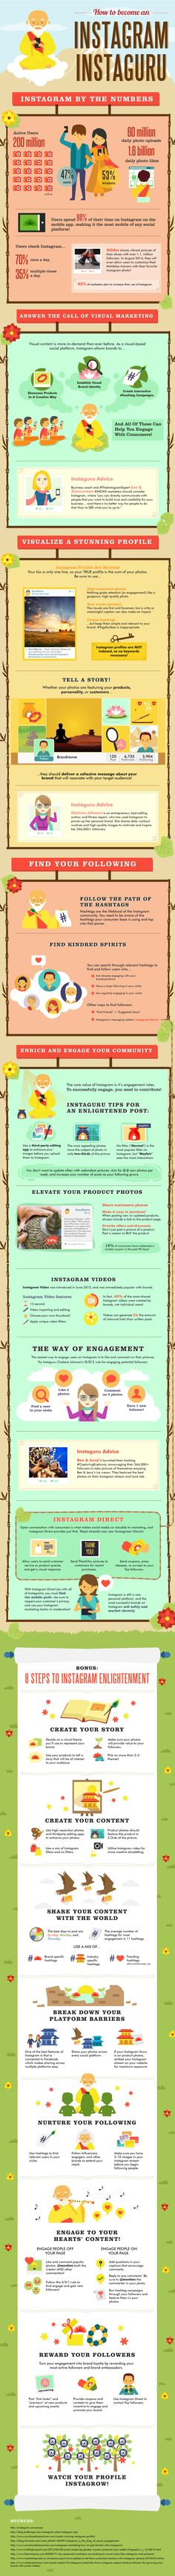 29 Tips on How to Succeed With Your Instagram Marketing